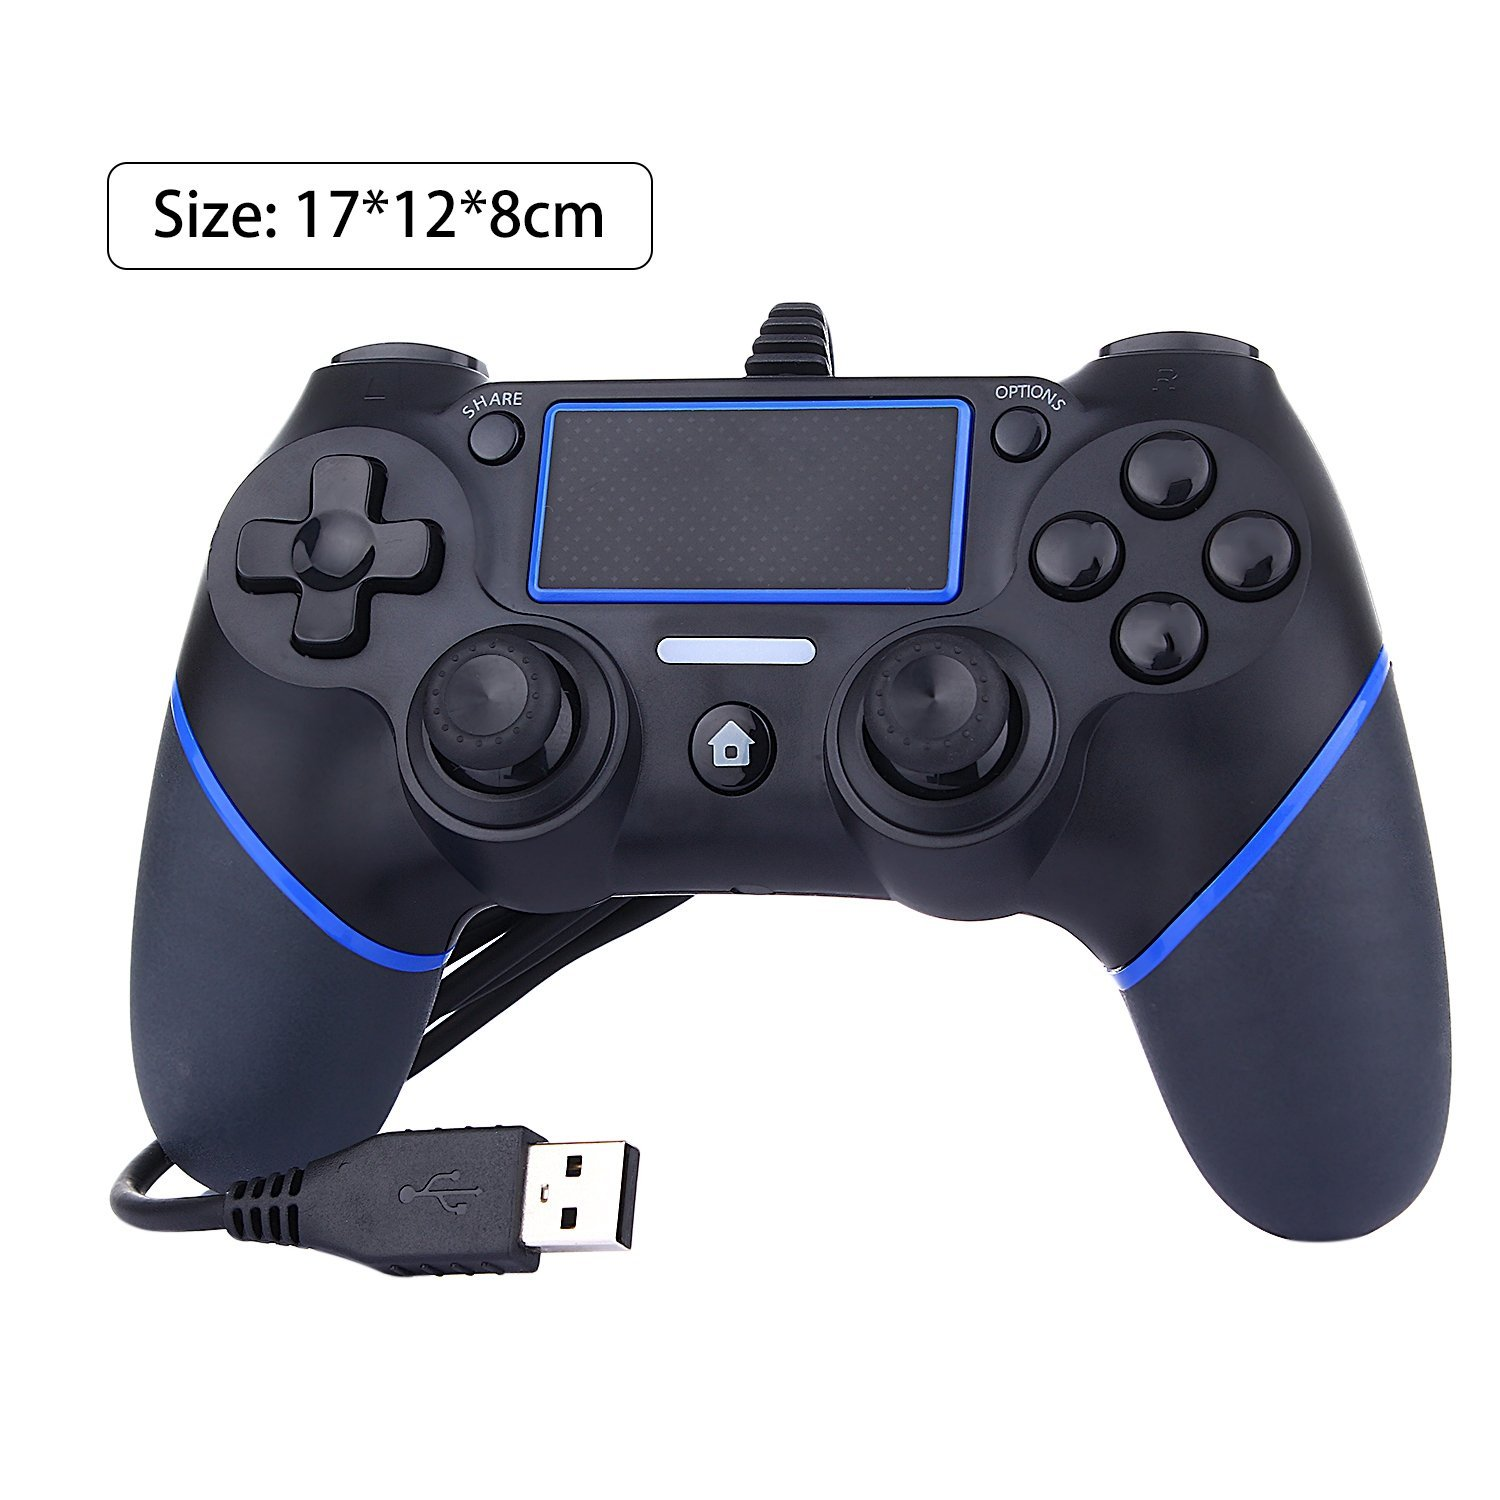 Wired Controller For Ps4 / Ps3/pc - Buy Wired Controller For Ps4 ...